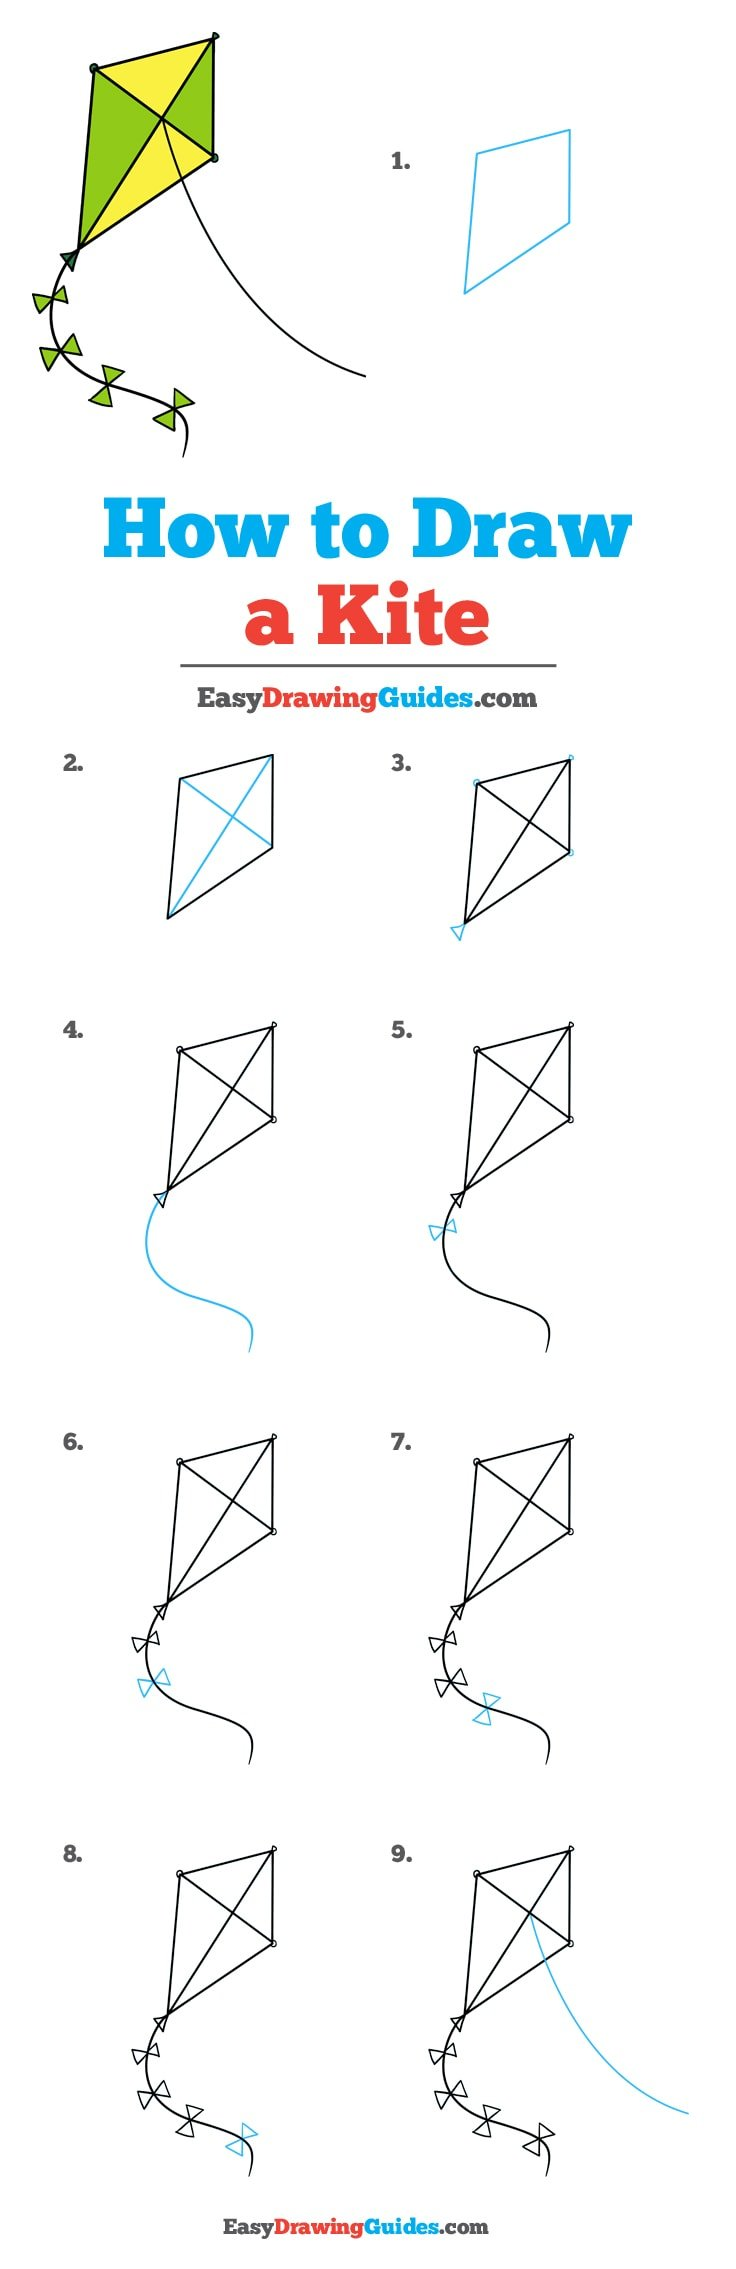 How to Draw Kite